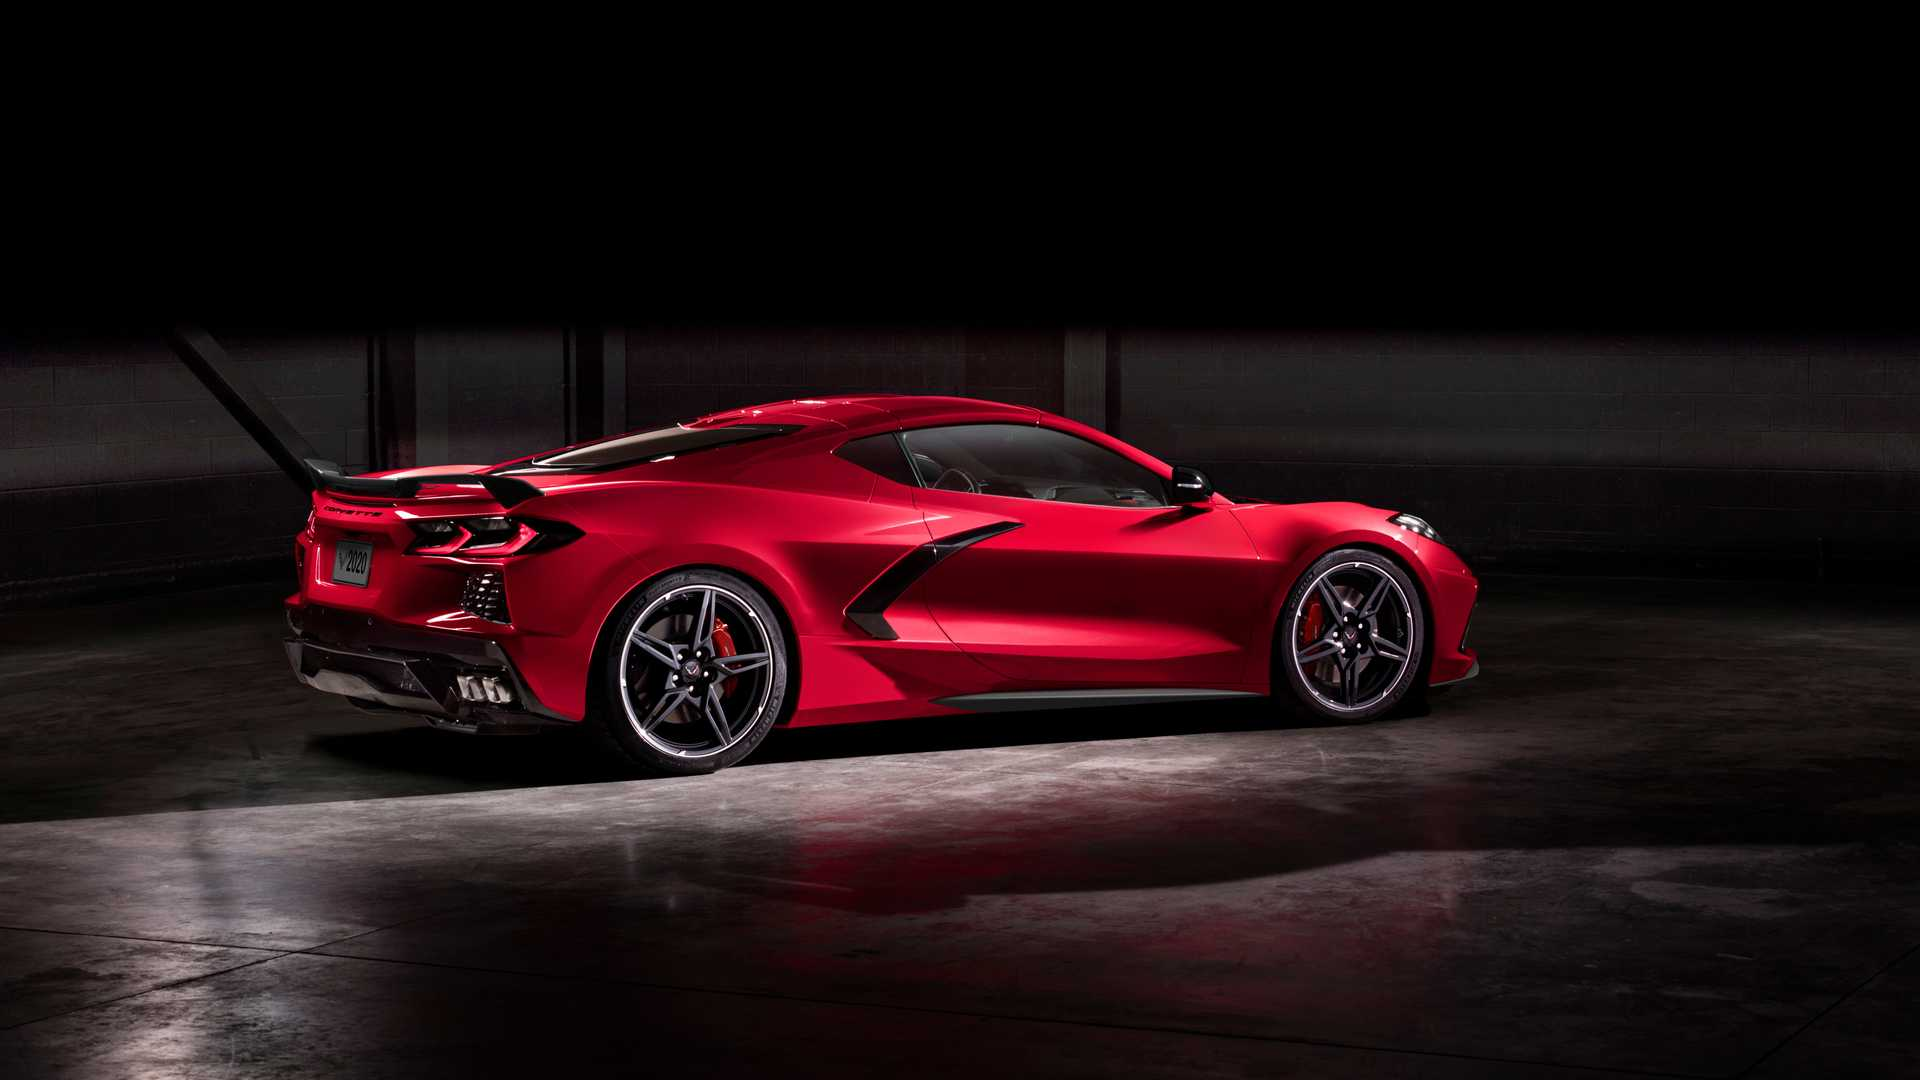 79 Concept of 2020 Chevrolet Corvette Zr1 Exterior with 2020 Chevrolet Corvette Zr1